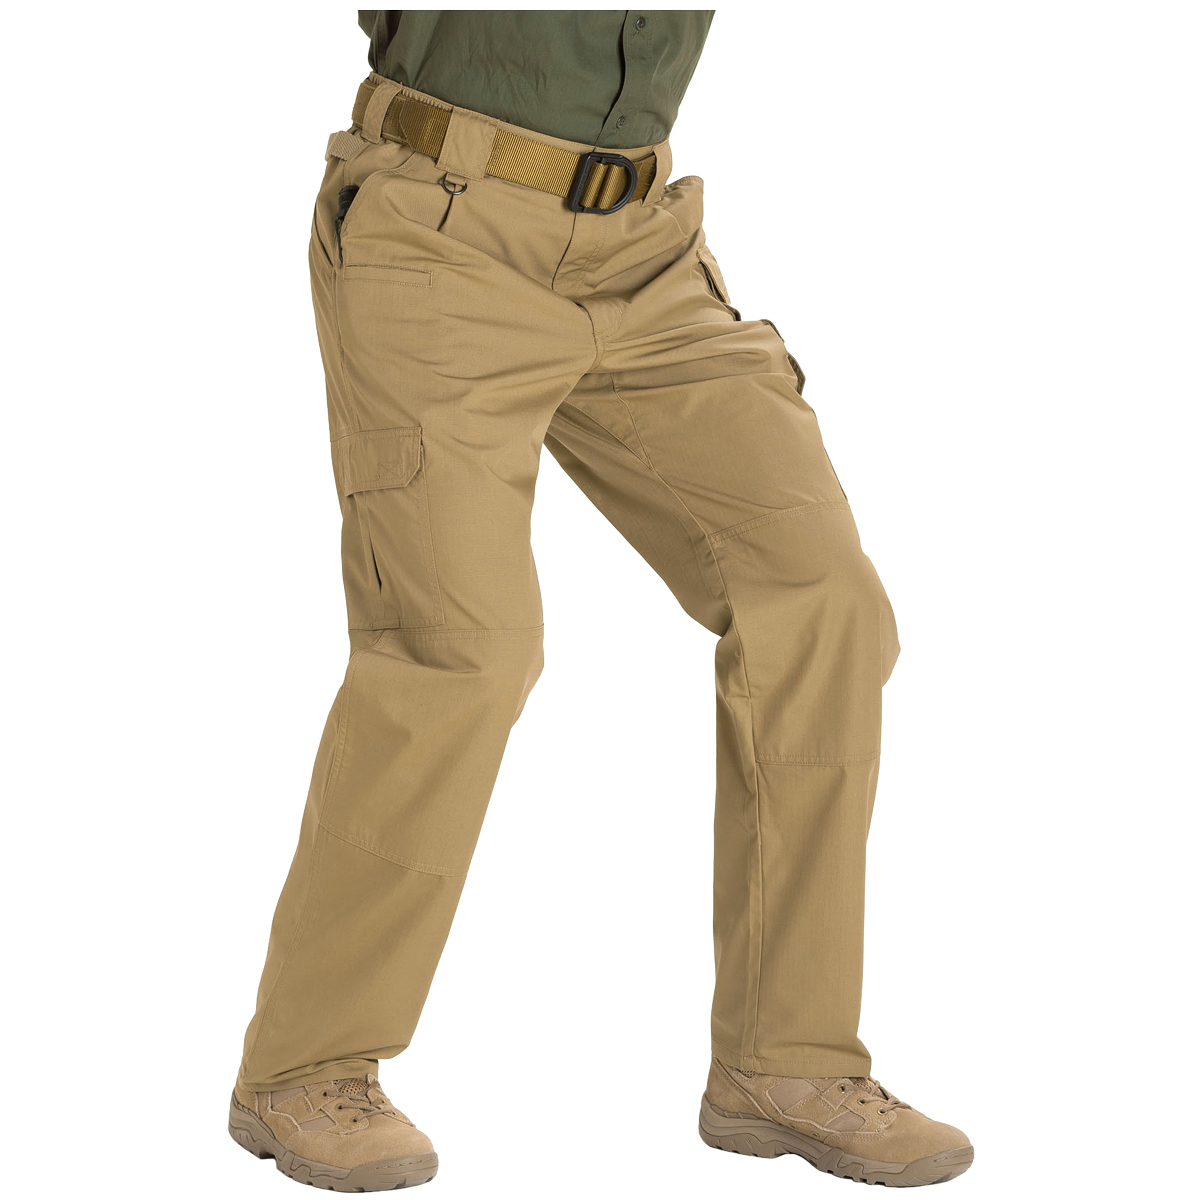 5.11 Taclite Pro Pants Coyote Brown 5.11 Taclite Pro Pants Coyote Brown